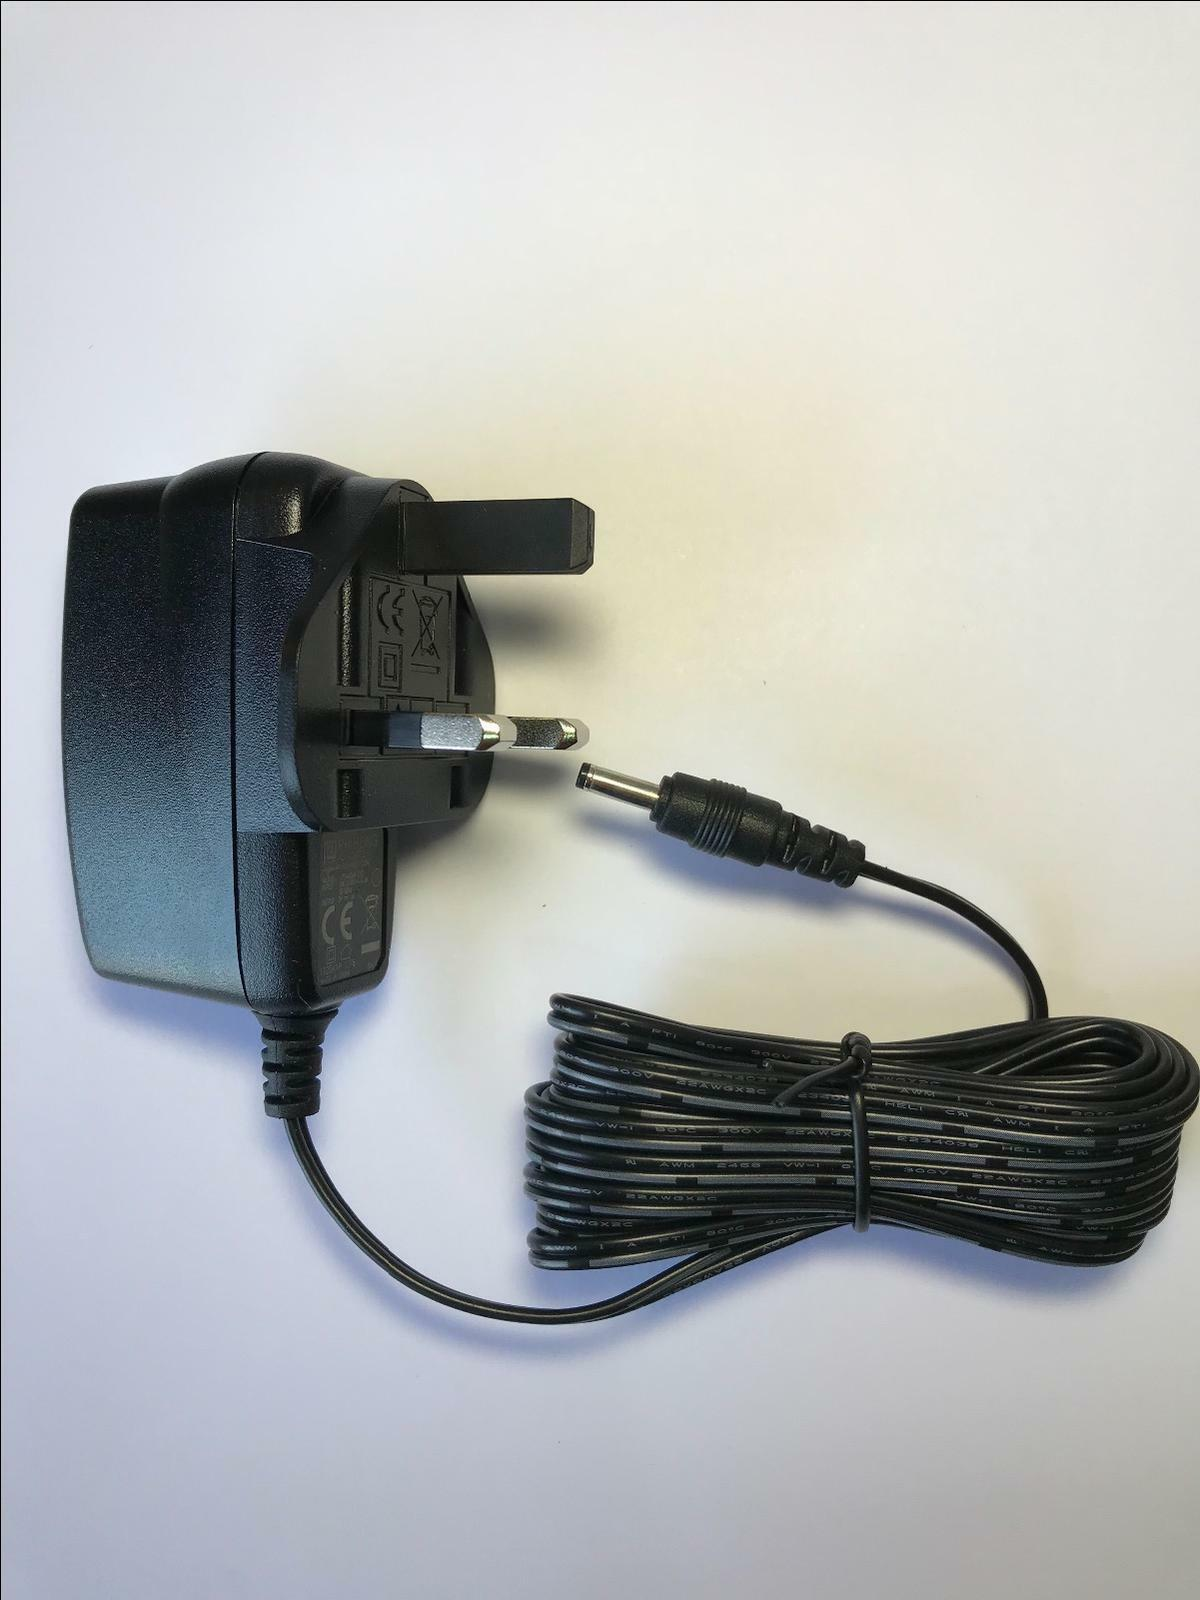 Replacement for 5V 0.7A AC Adapter Charger for model AW007WR-0500070BH UK Plug